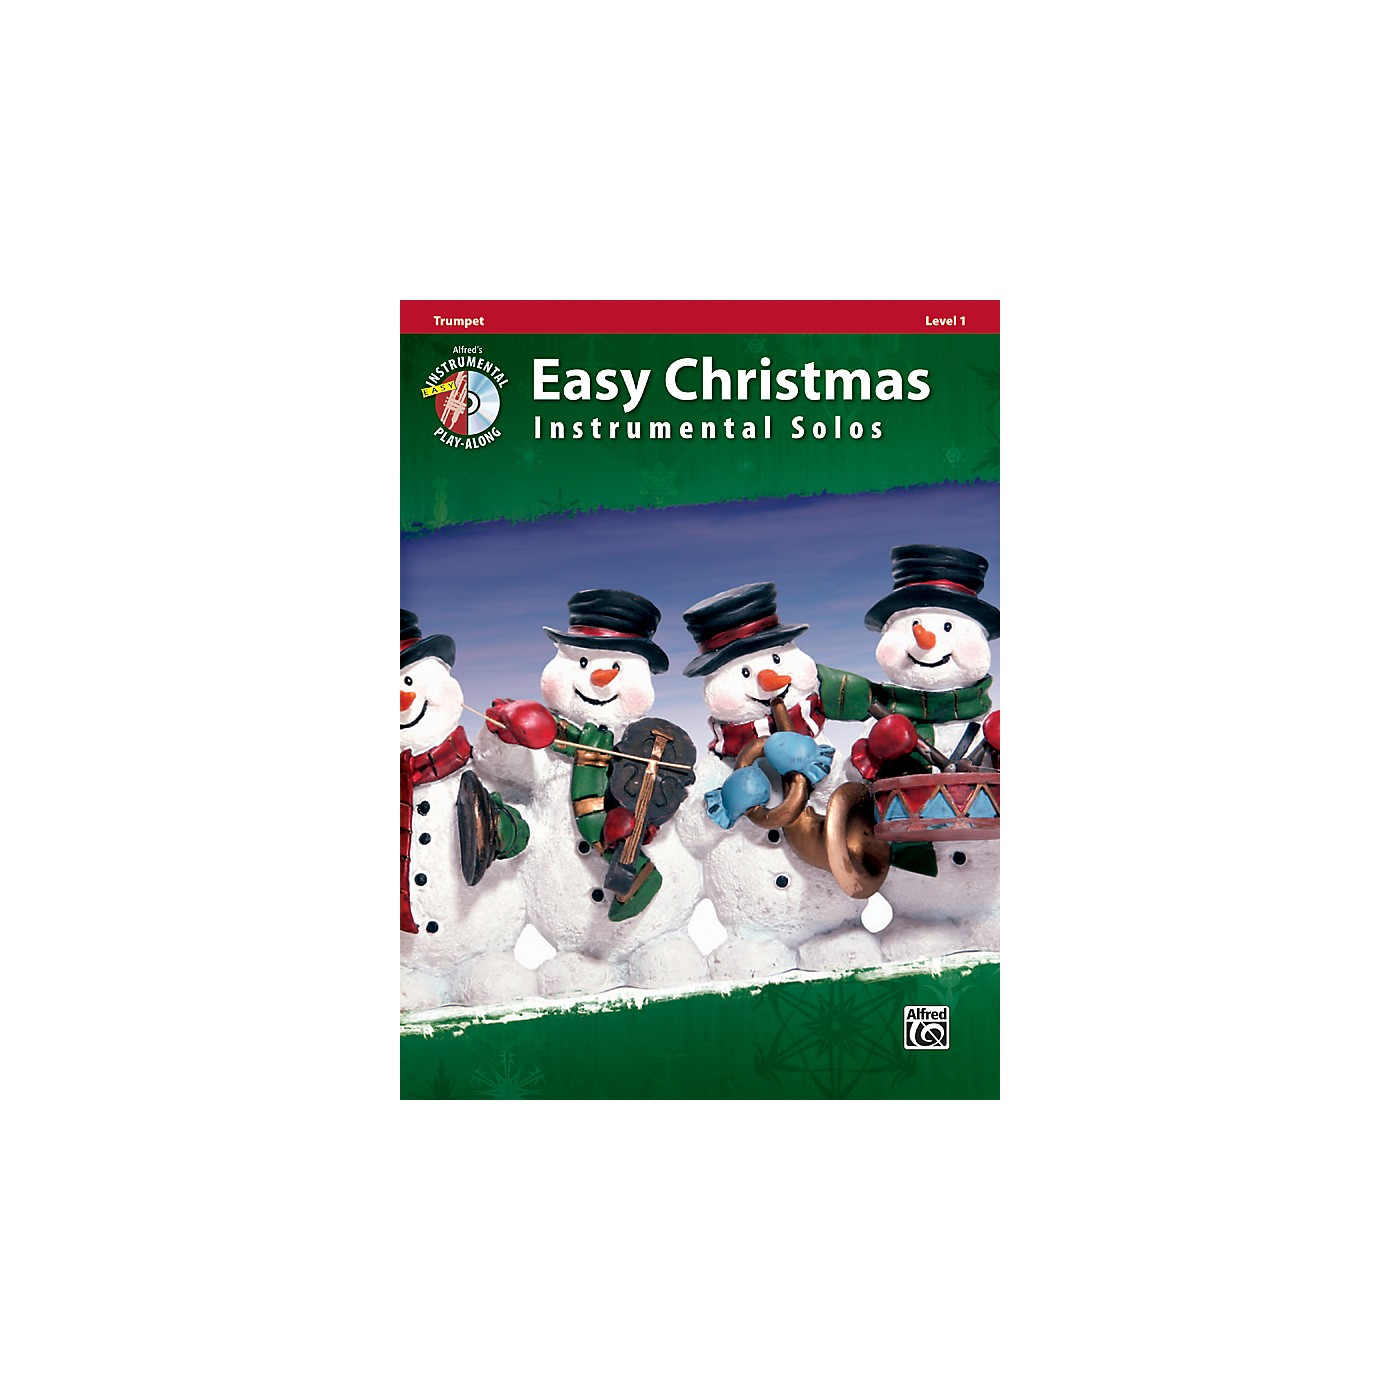 Alfred Easy Christmas Instrumental Solos Level 1 Trumpet Book & CD thumbnail